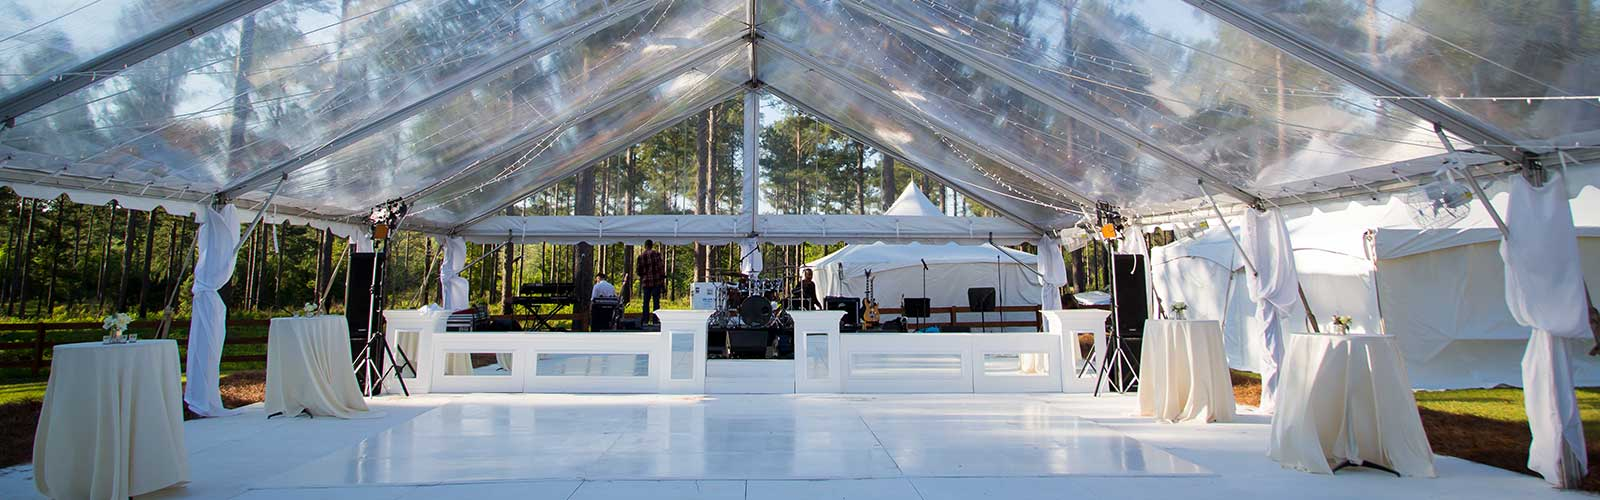 Rentals for events in Mobile AL and the Greater Gulf Coast